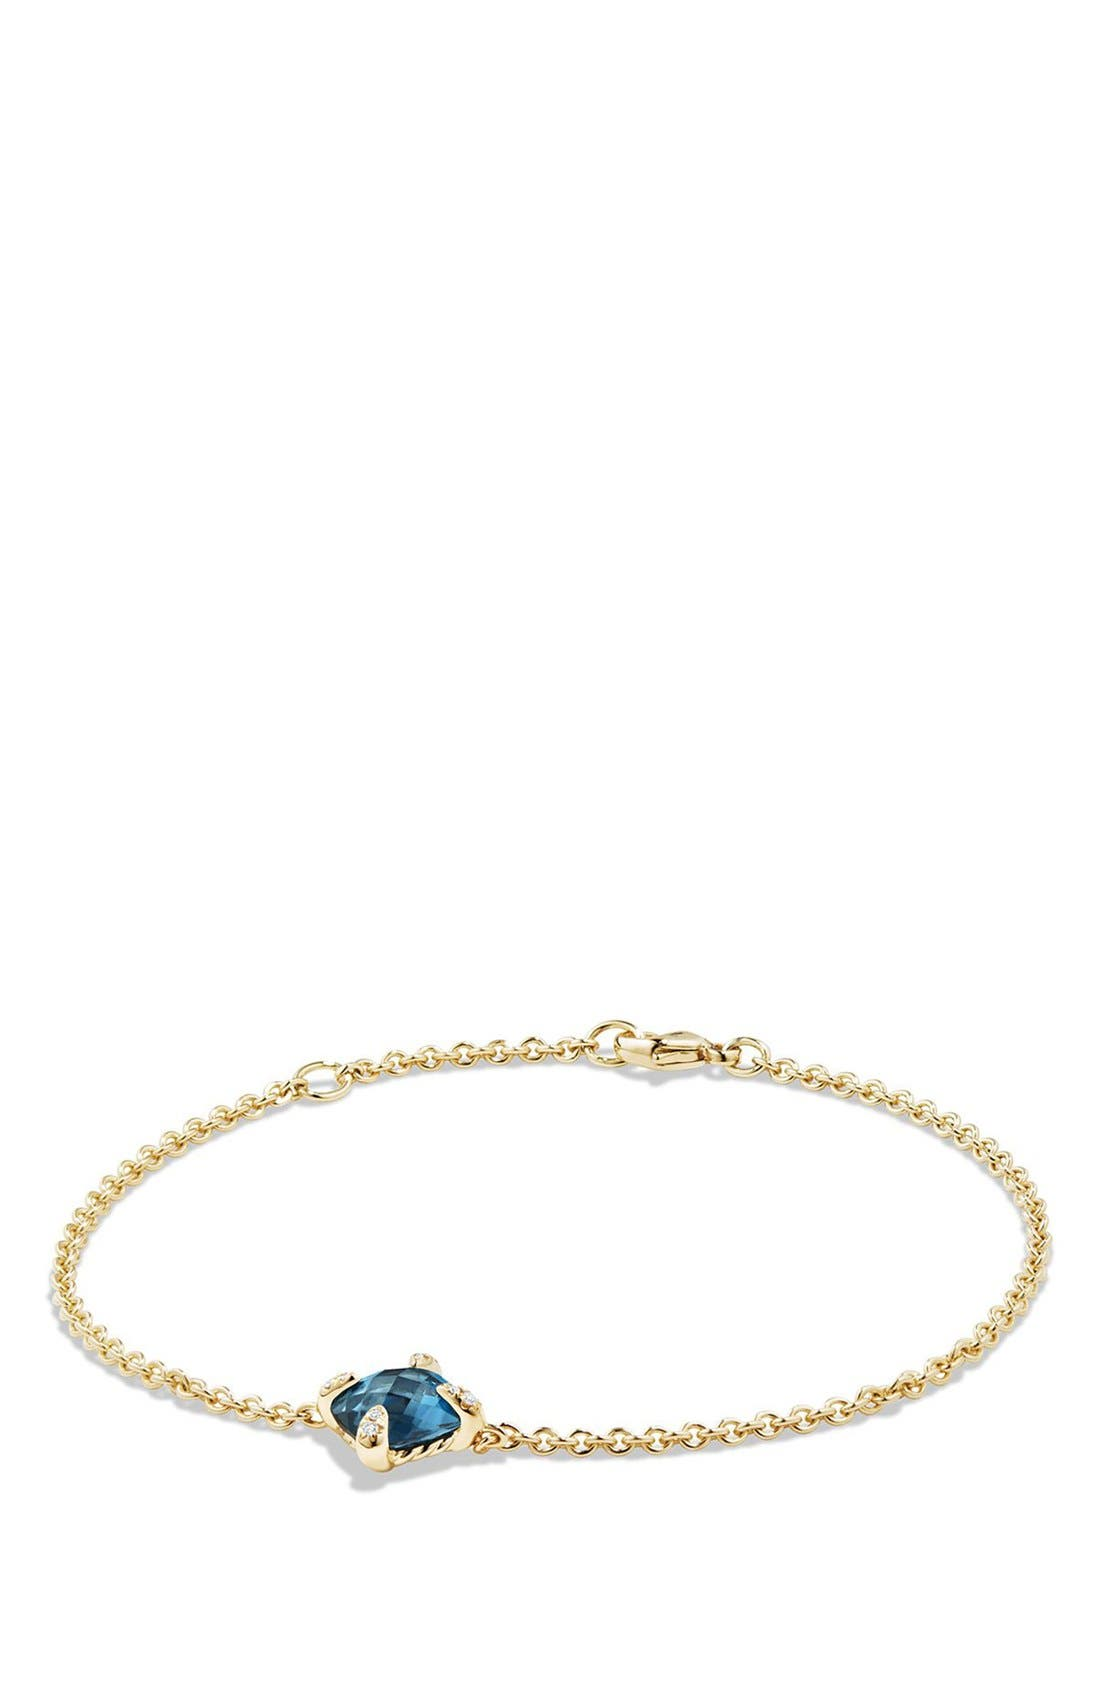 David Yurman 'Châtelaine' Bracelet with Diamonds in 18K Gold